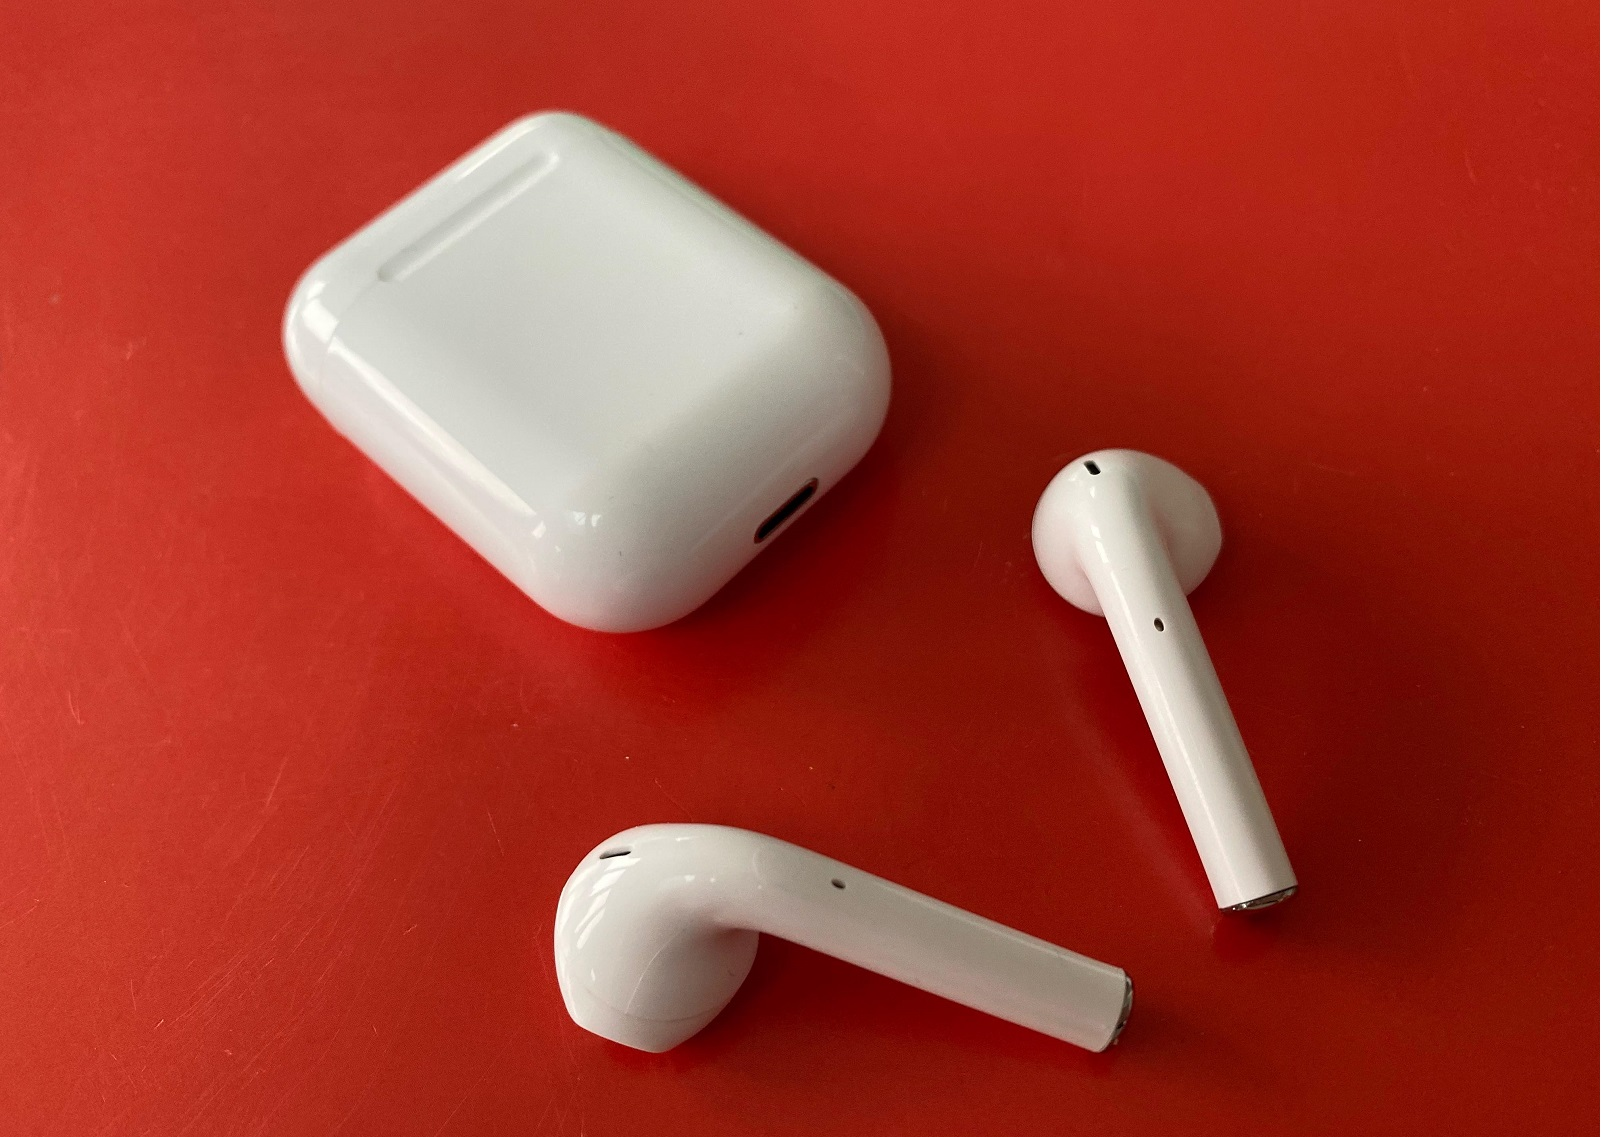 Ice_white_airpods